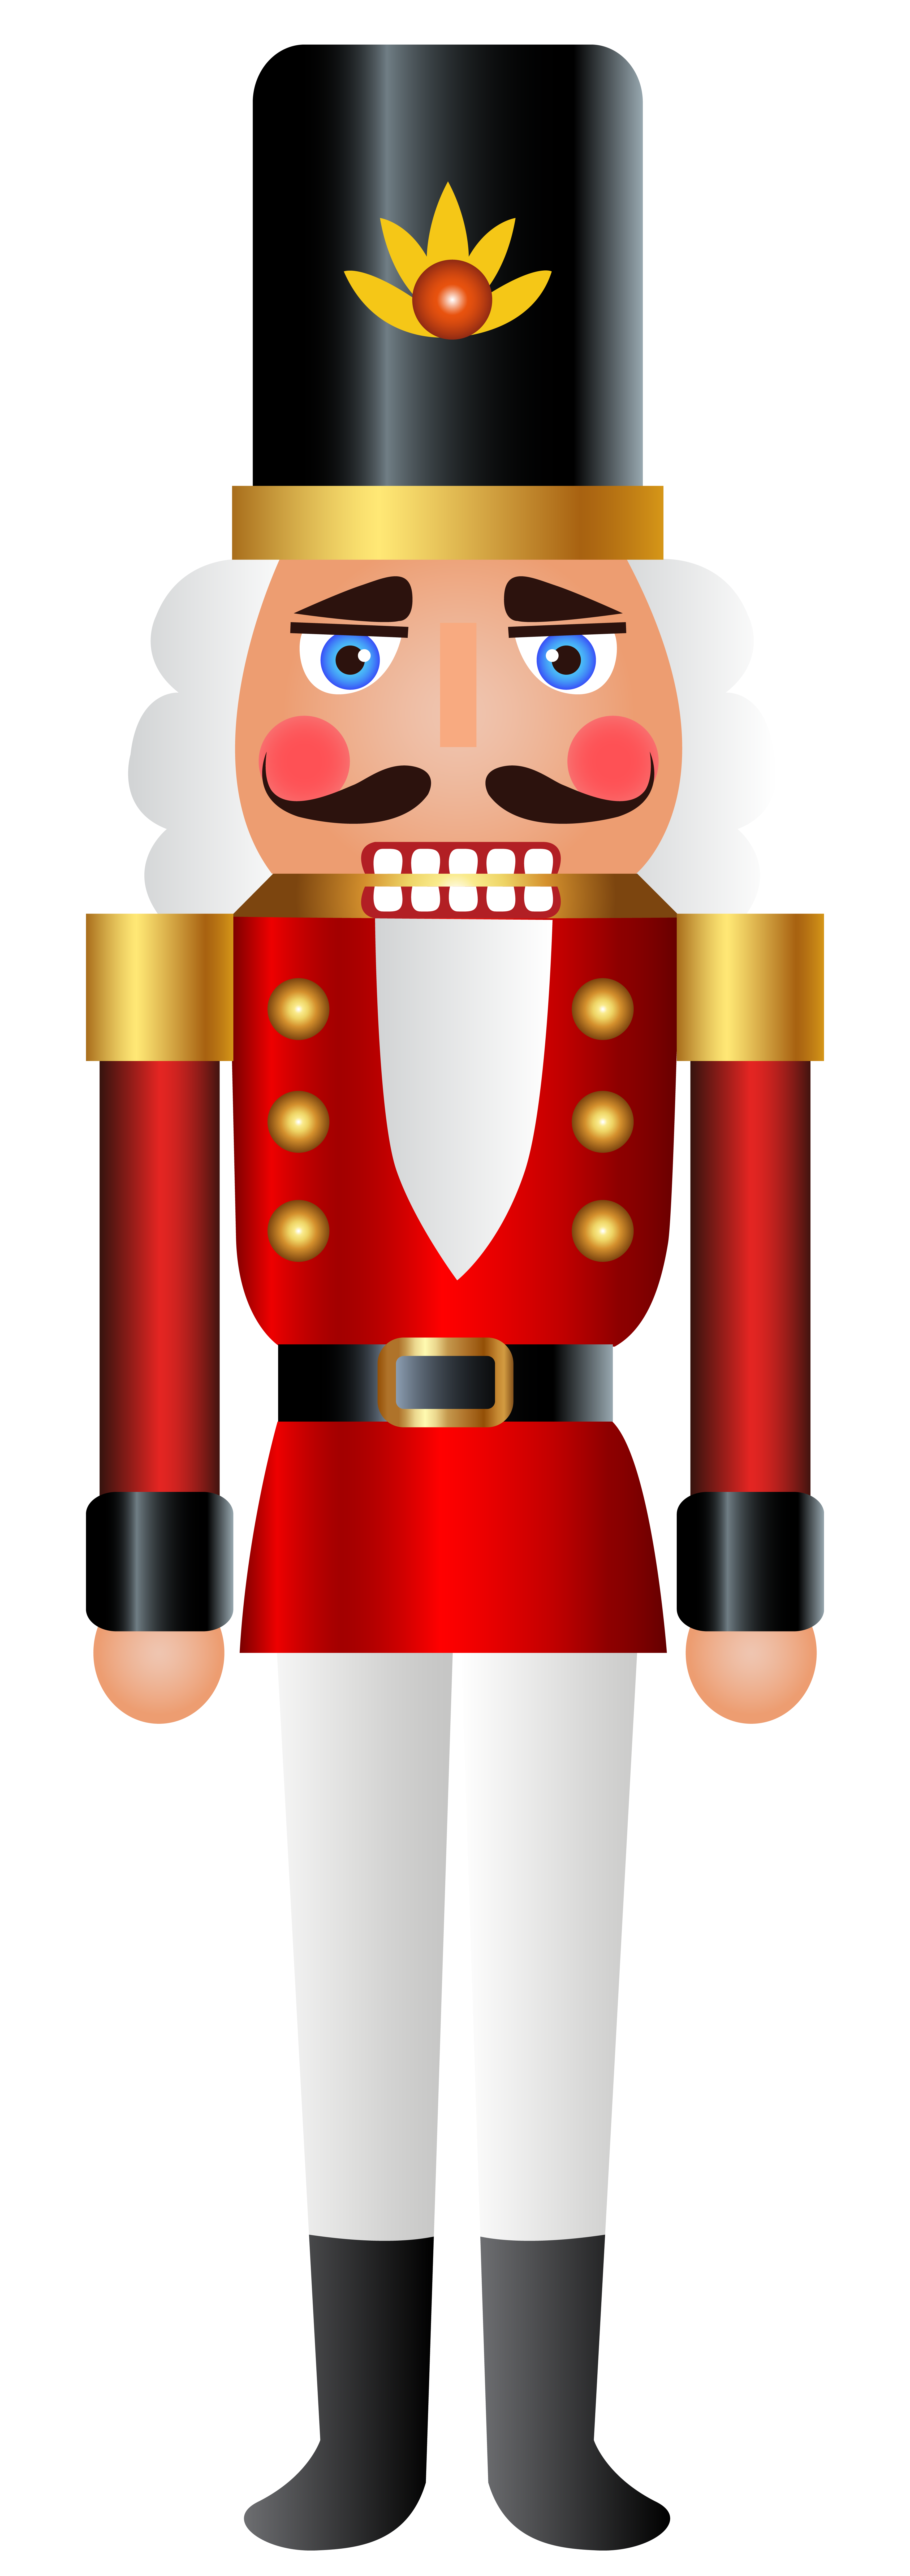 Free clipart photos of the nutcracker ballet transparent library Nutcracker ballet clipart clipart images gallery for free download ... transparent library